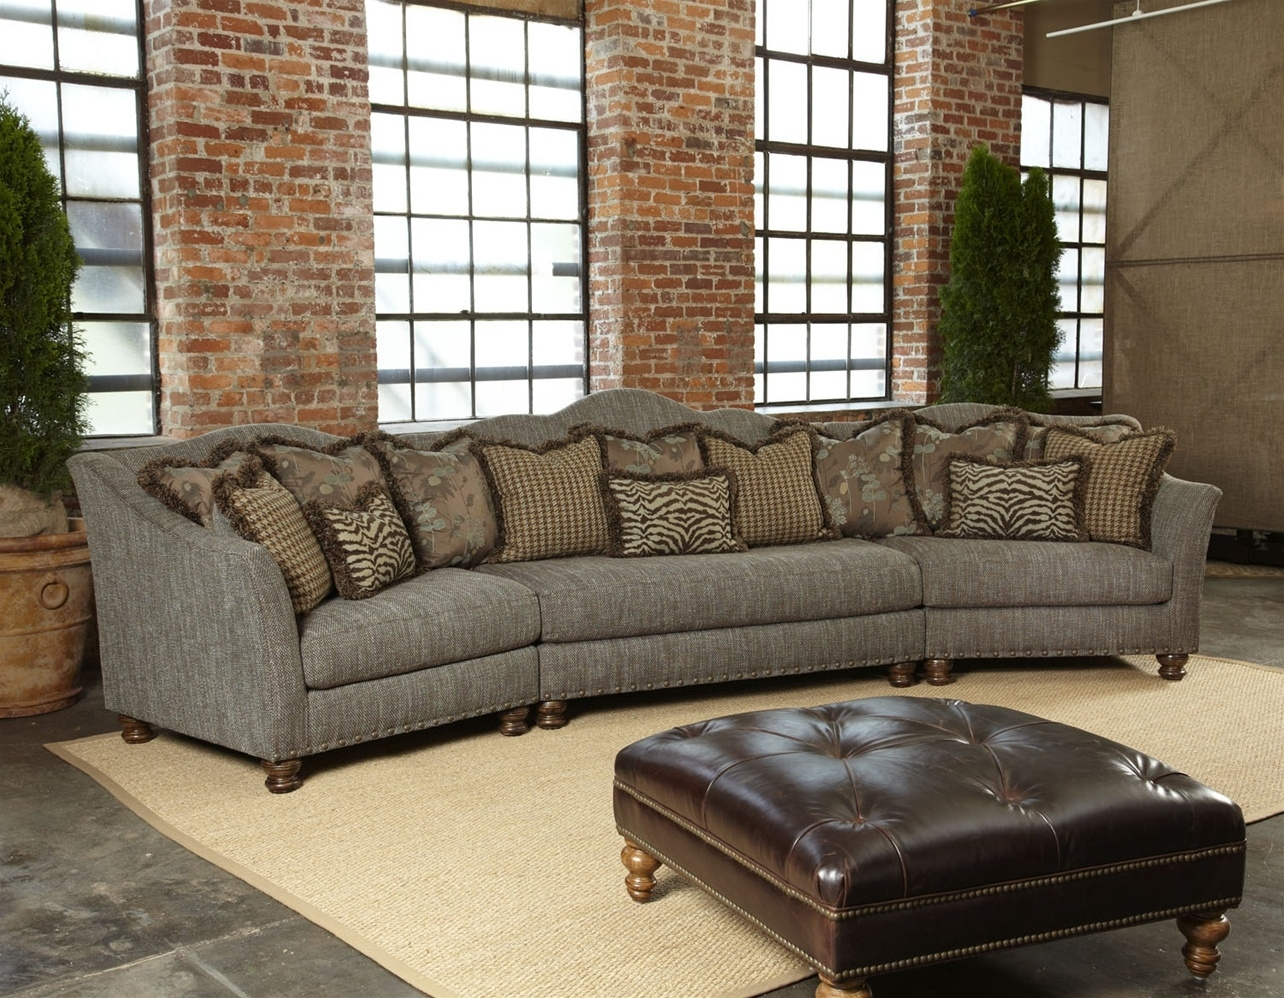 Luxury High Quality Sectional Sofa 20 With Additional Sofa Table Regarding Quality Sectional Sofas (View 5 of 10)